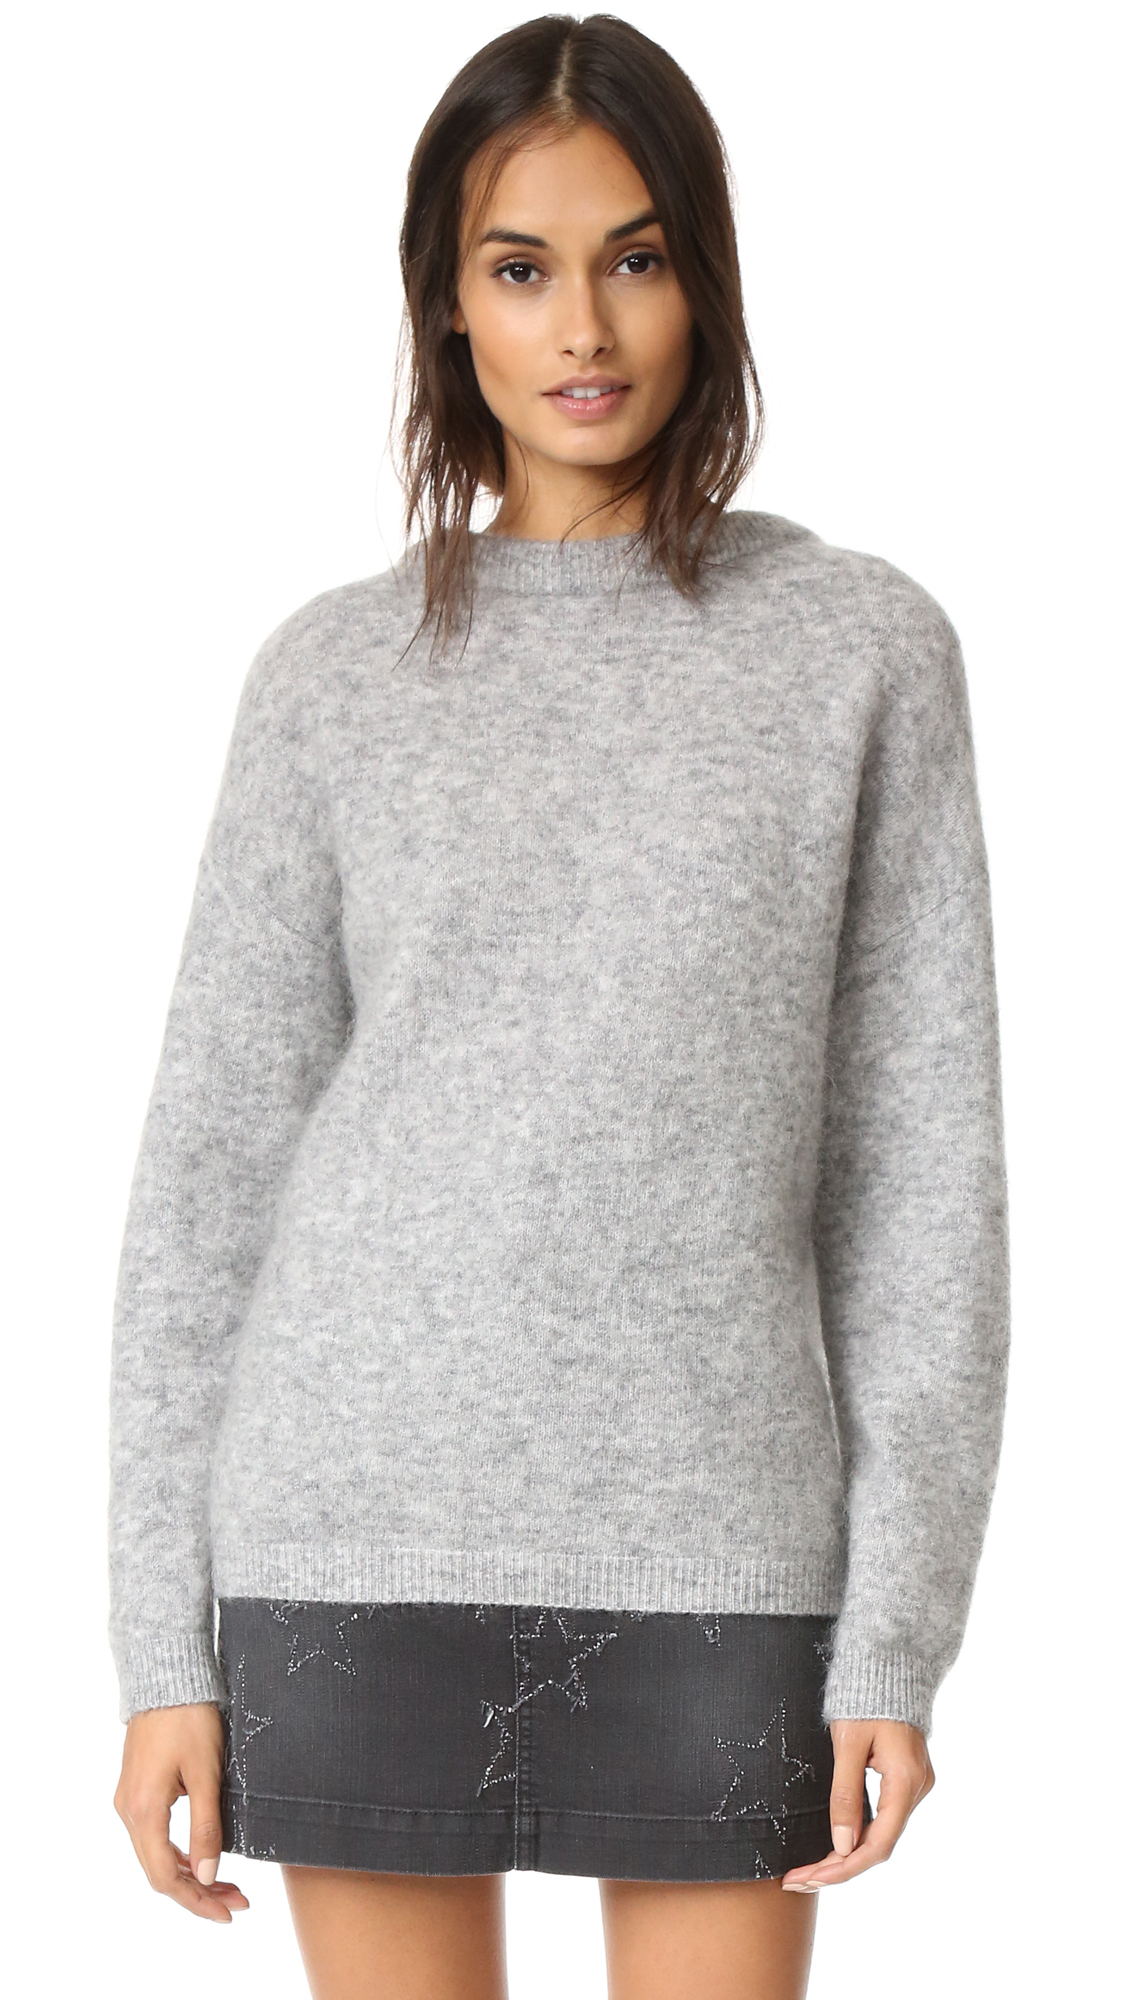 Acne Studios Dramatic Sweater   SHOPBOP a95fd7dfead